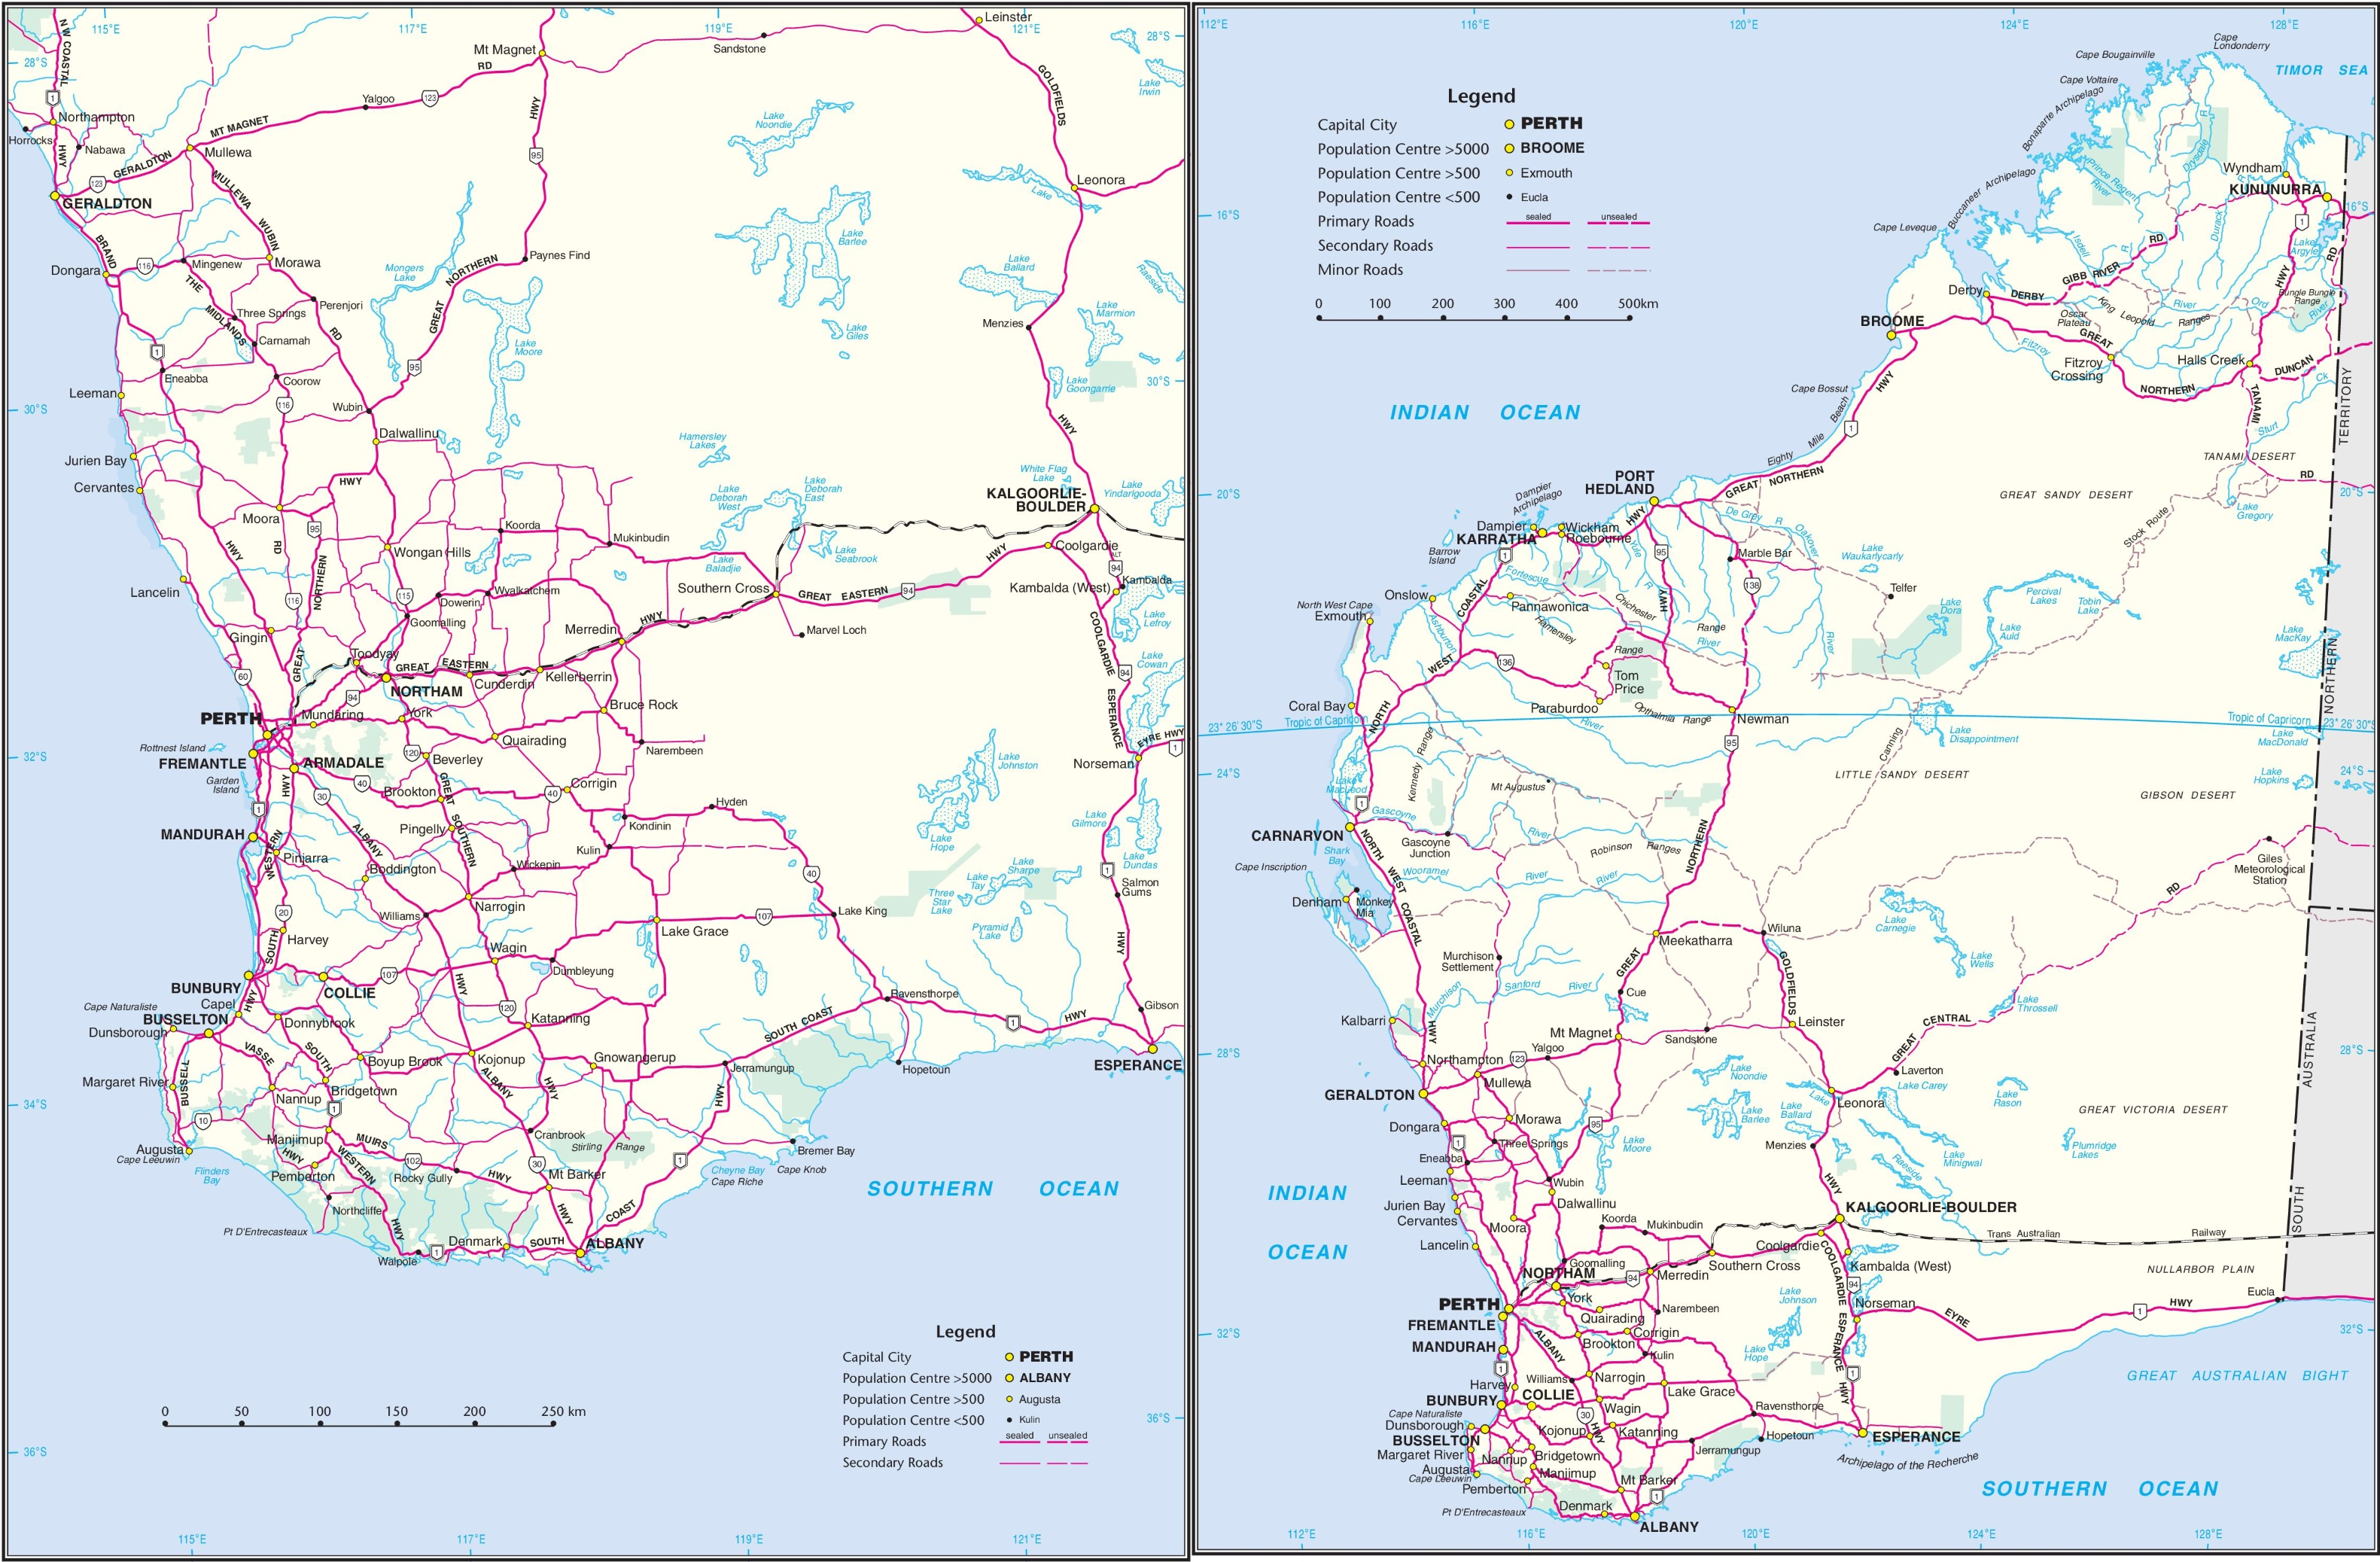 Map Of Western Australia With Cities.Western Australia State Maps Australia Maps Of Western